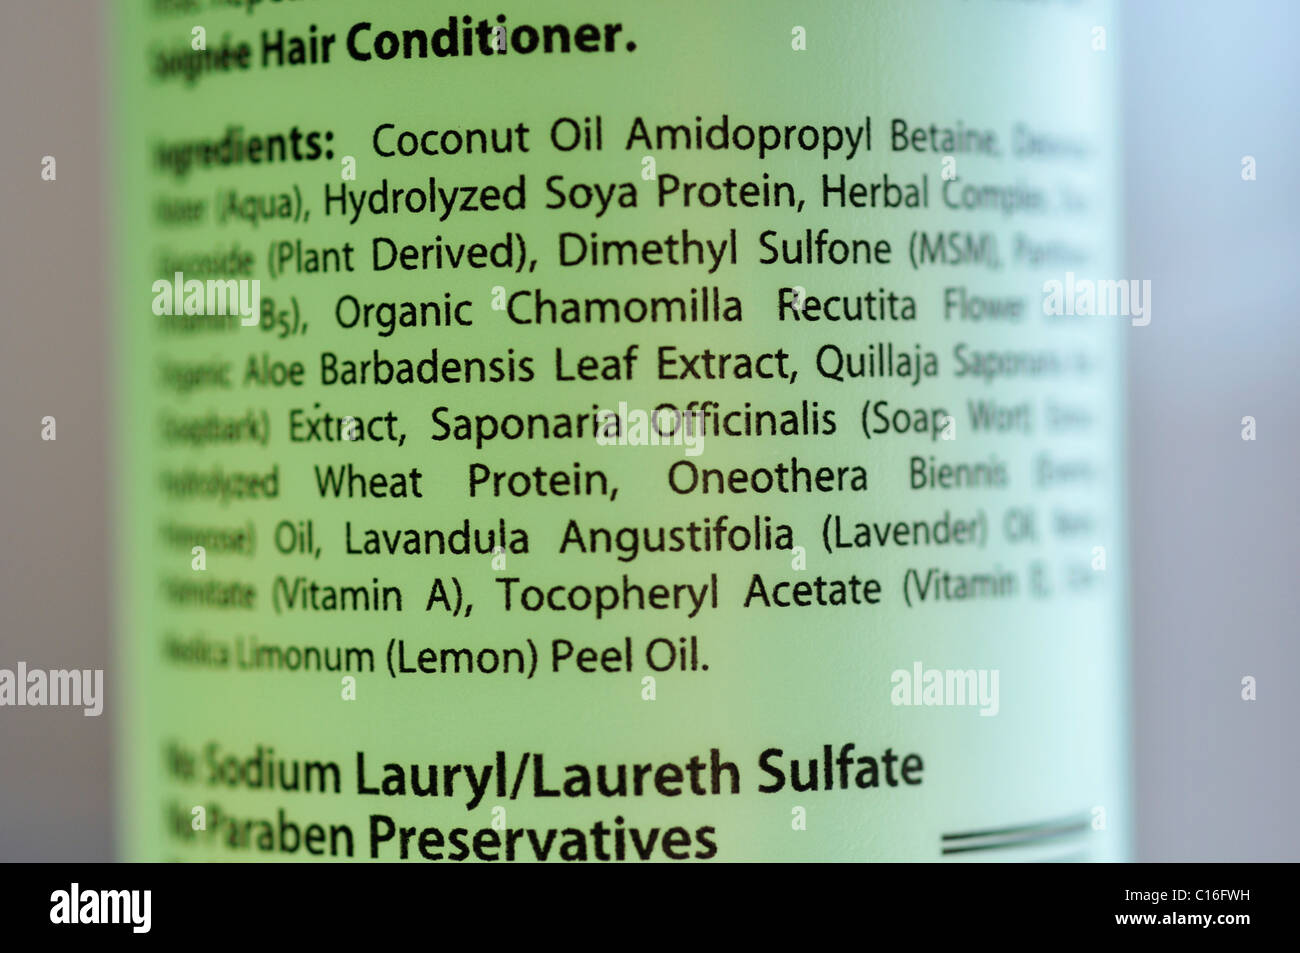 All-natural hair conditioner ingredient information - Stock Image